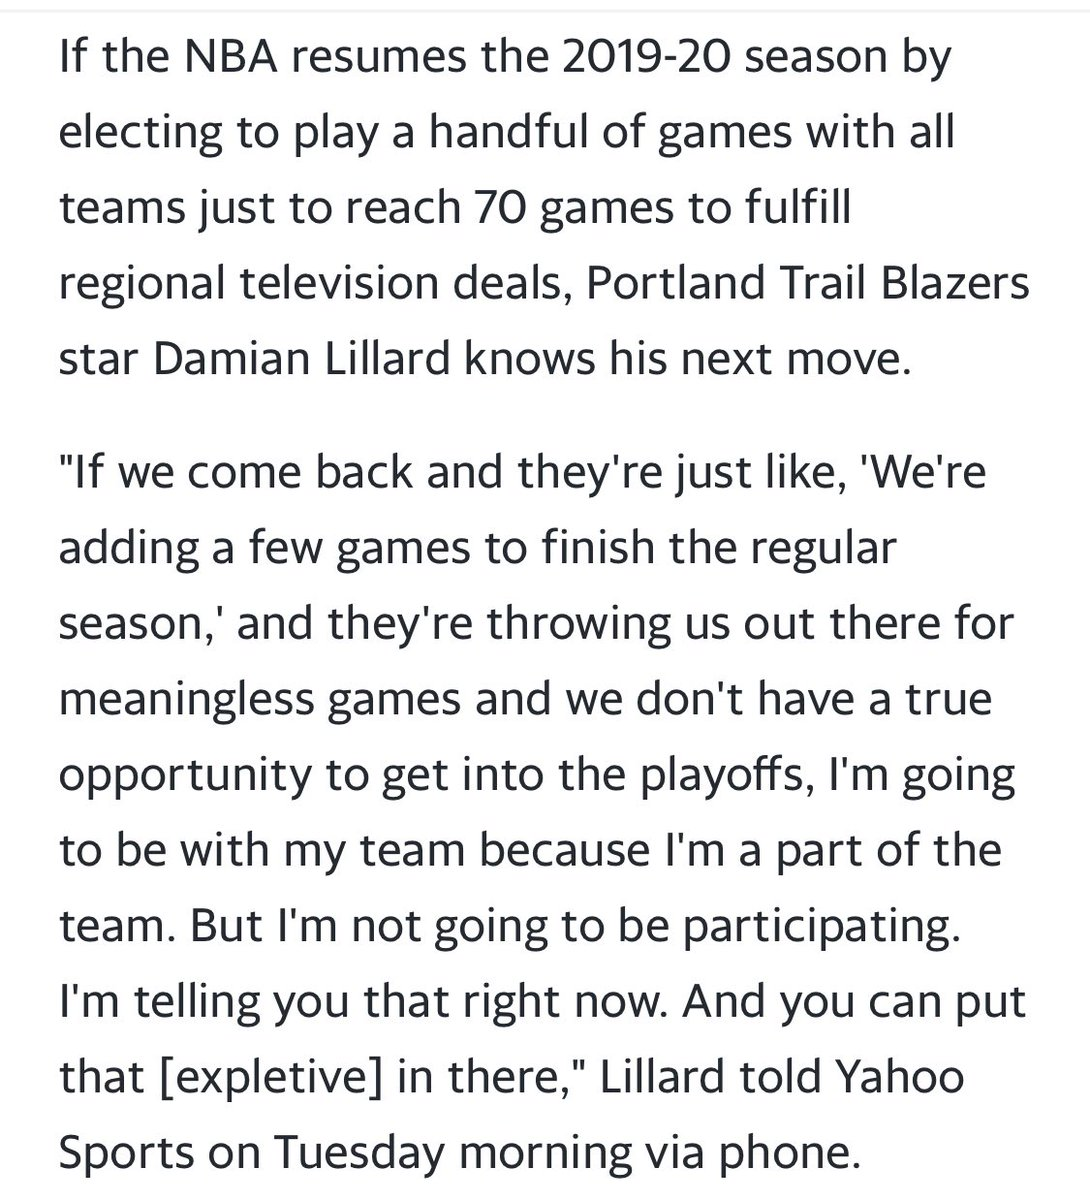 Dame puts on the record what, I'm sure, a lot of players are thinking to themselves. Not sure how the NBA properly addresses this in a way that's fair to the playoff teams: https://t.co/W5Pn7senC8 https://t.co/uXNZIDBqut